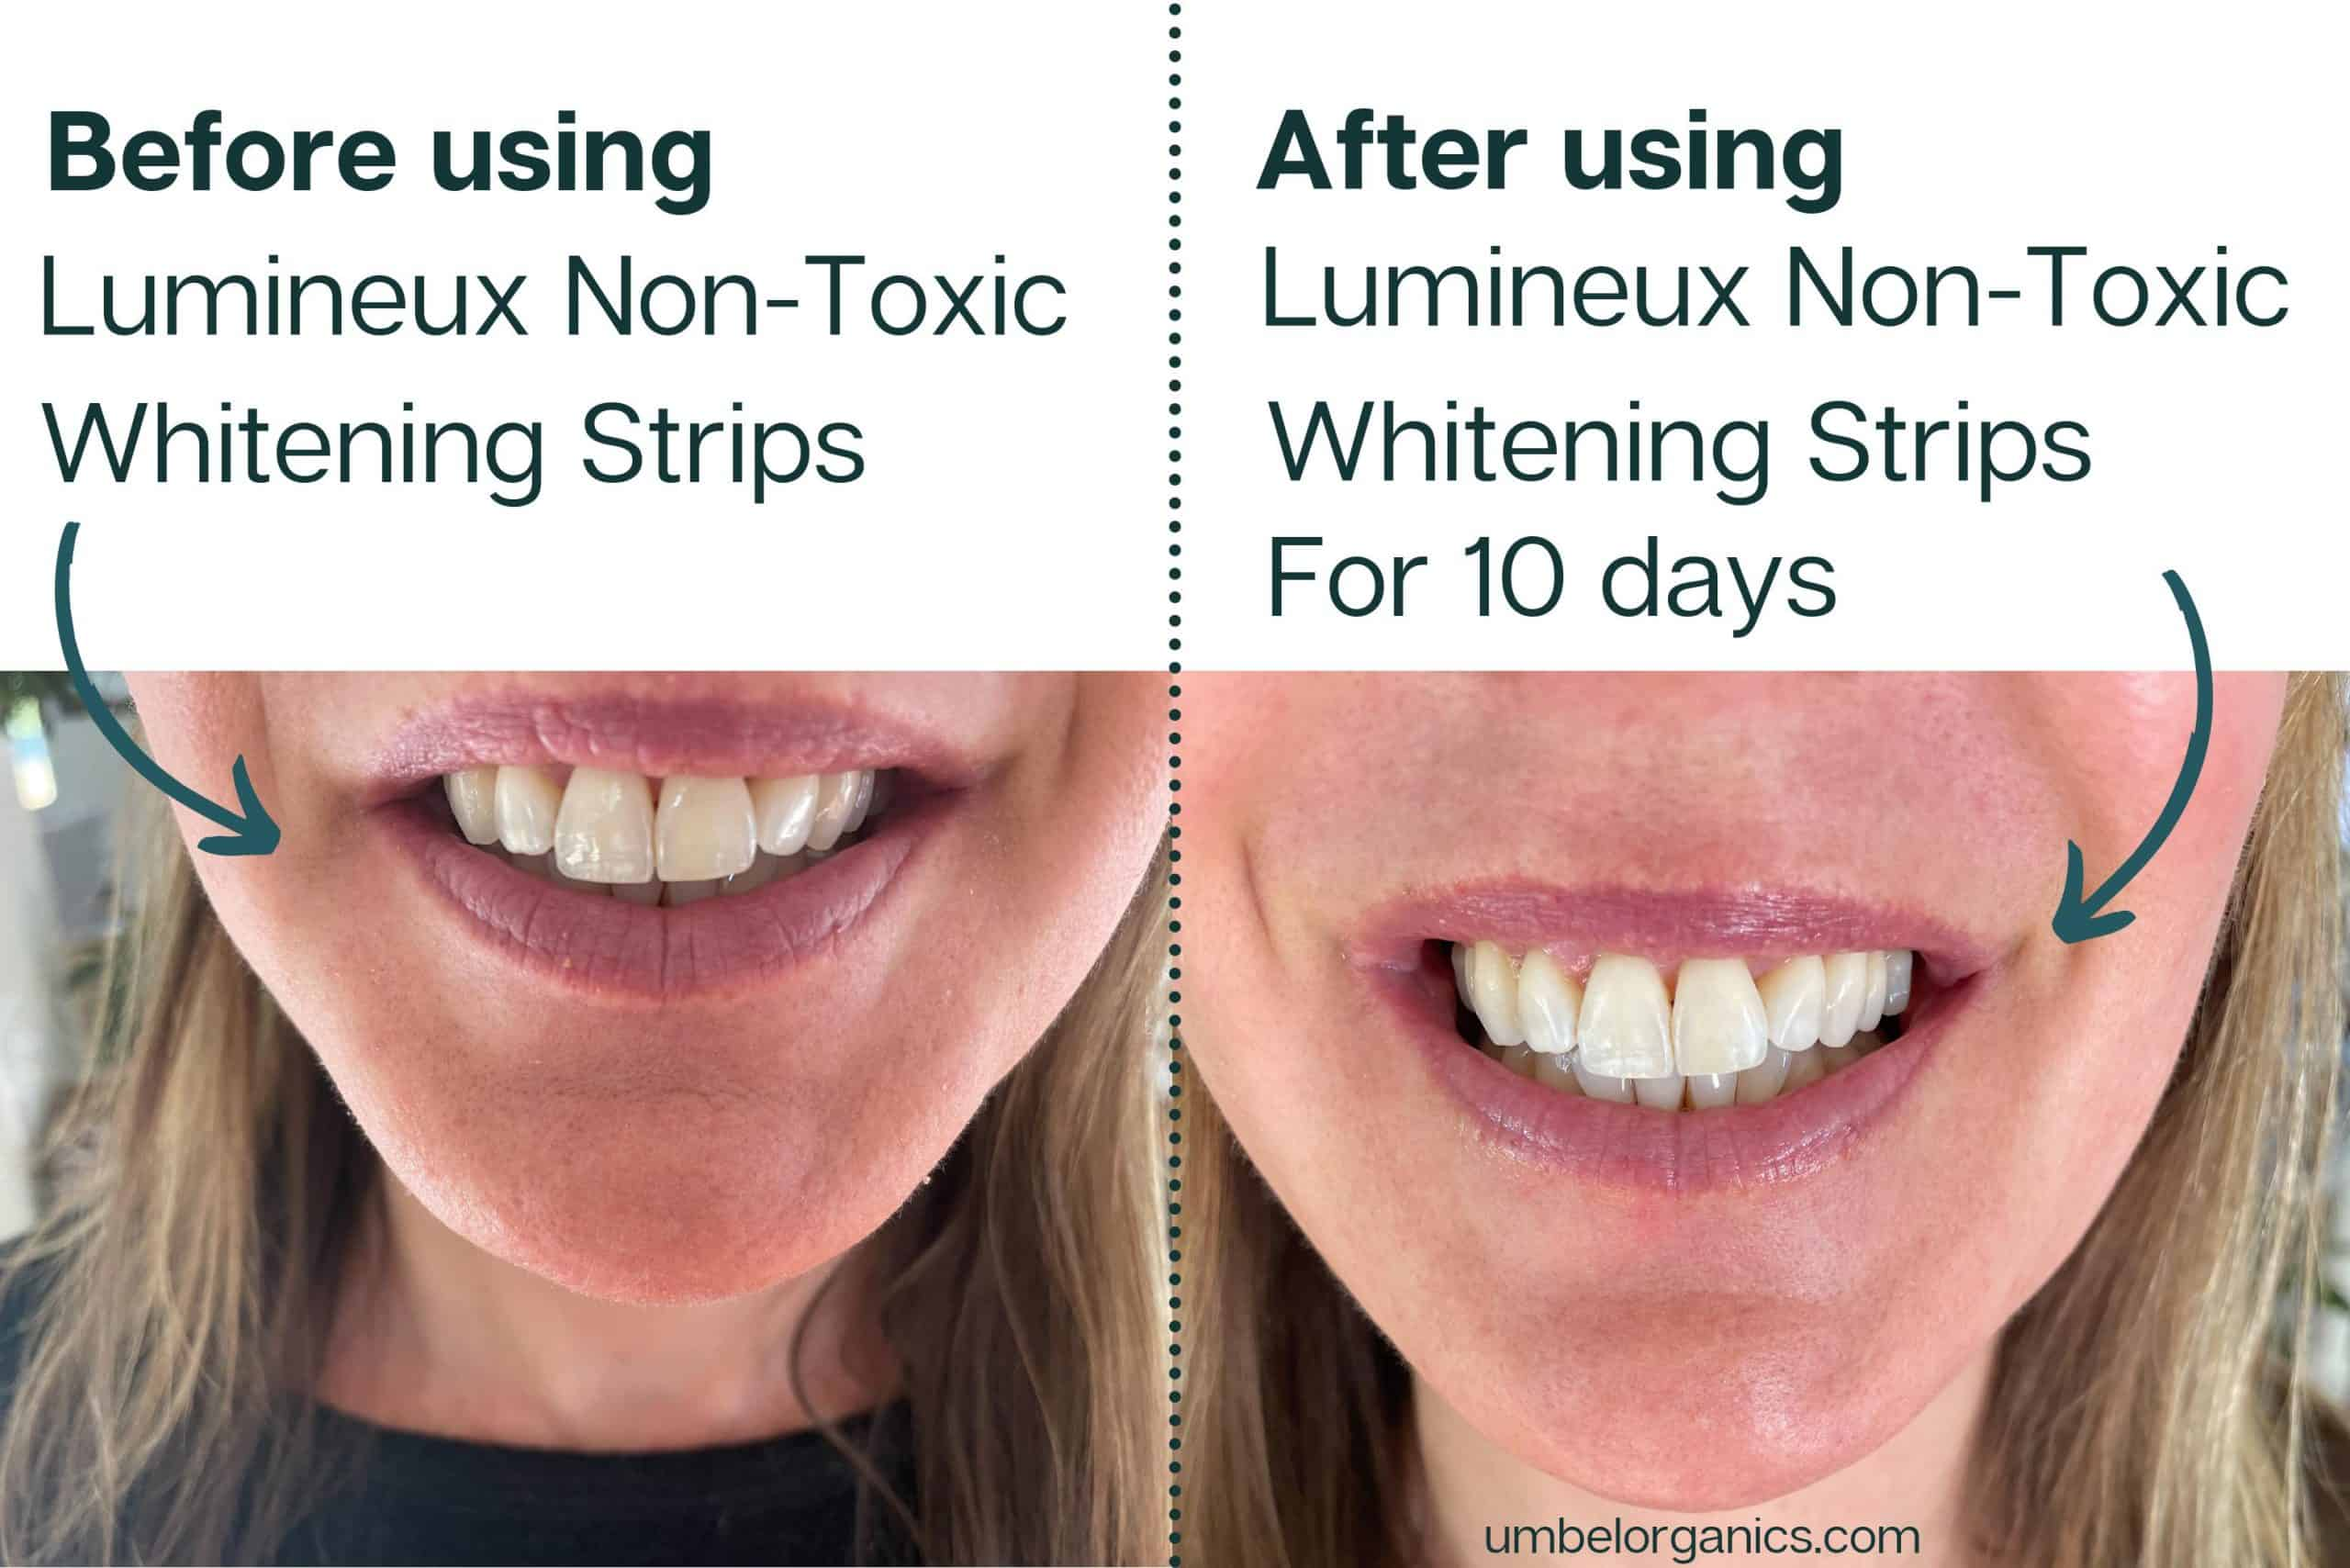 Before and After Using Lumineux Non-Toxic Whitening Strips